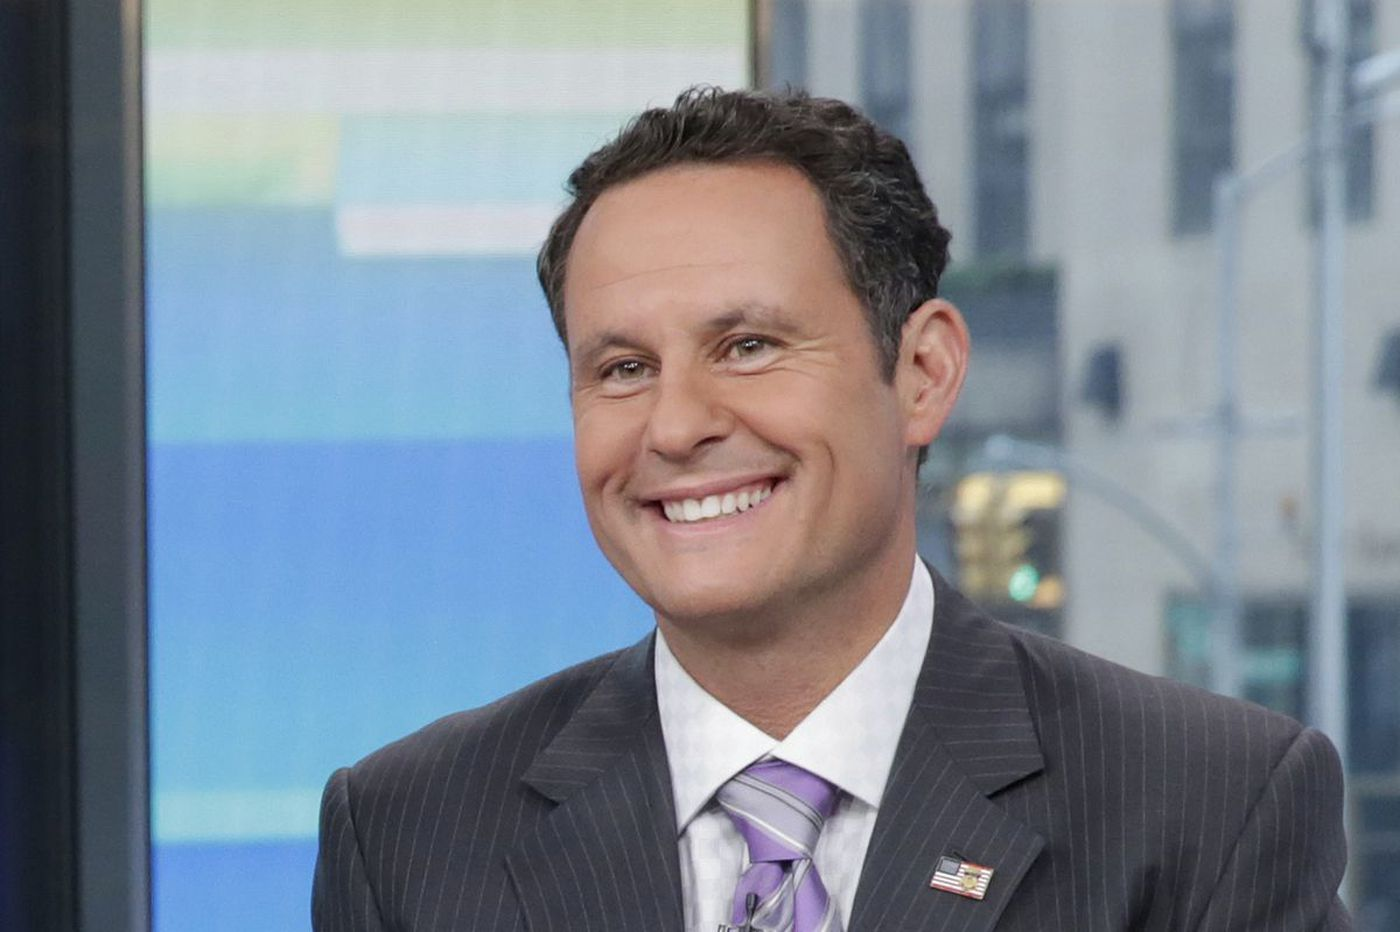 Fox News host Brian Kilmeade on criticizing Trump: 'If you respect him, but disagree, that's fine'